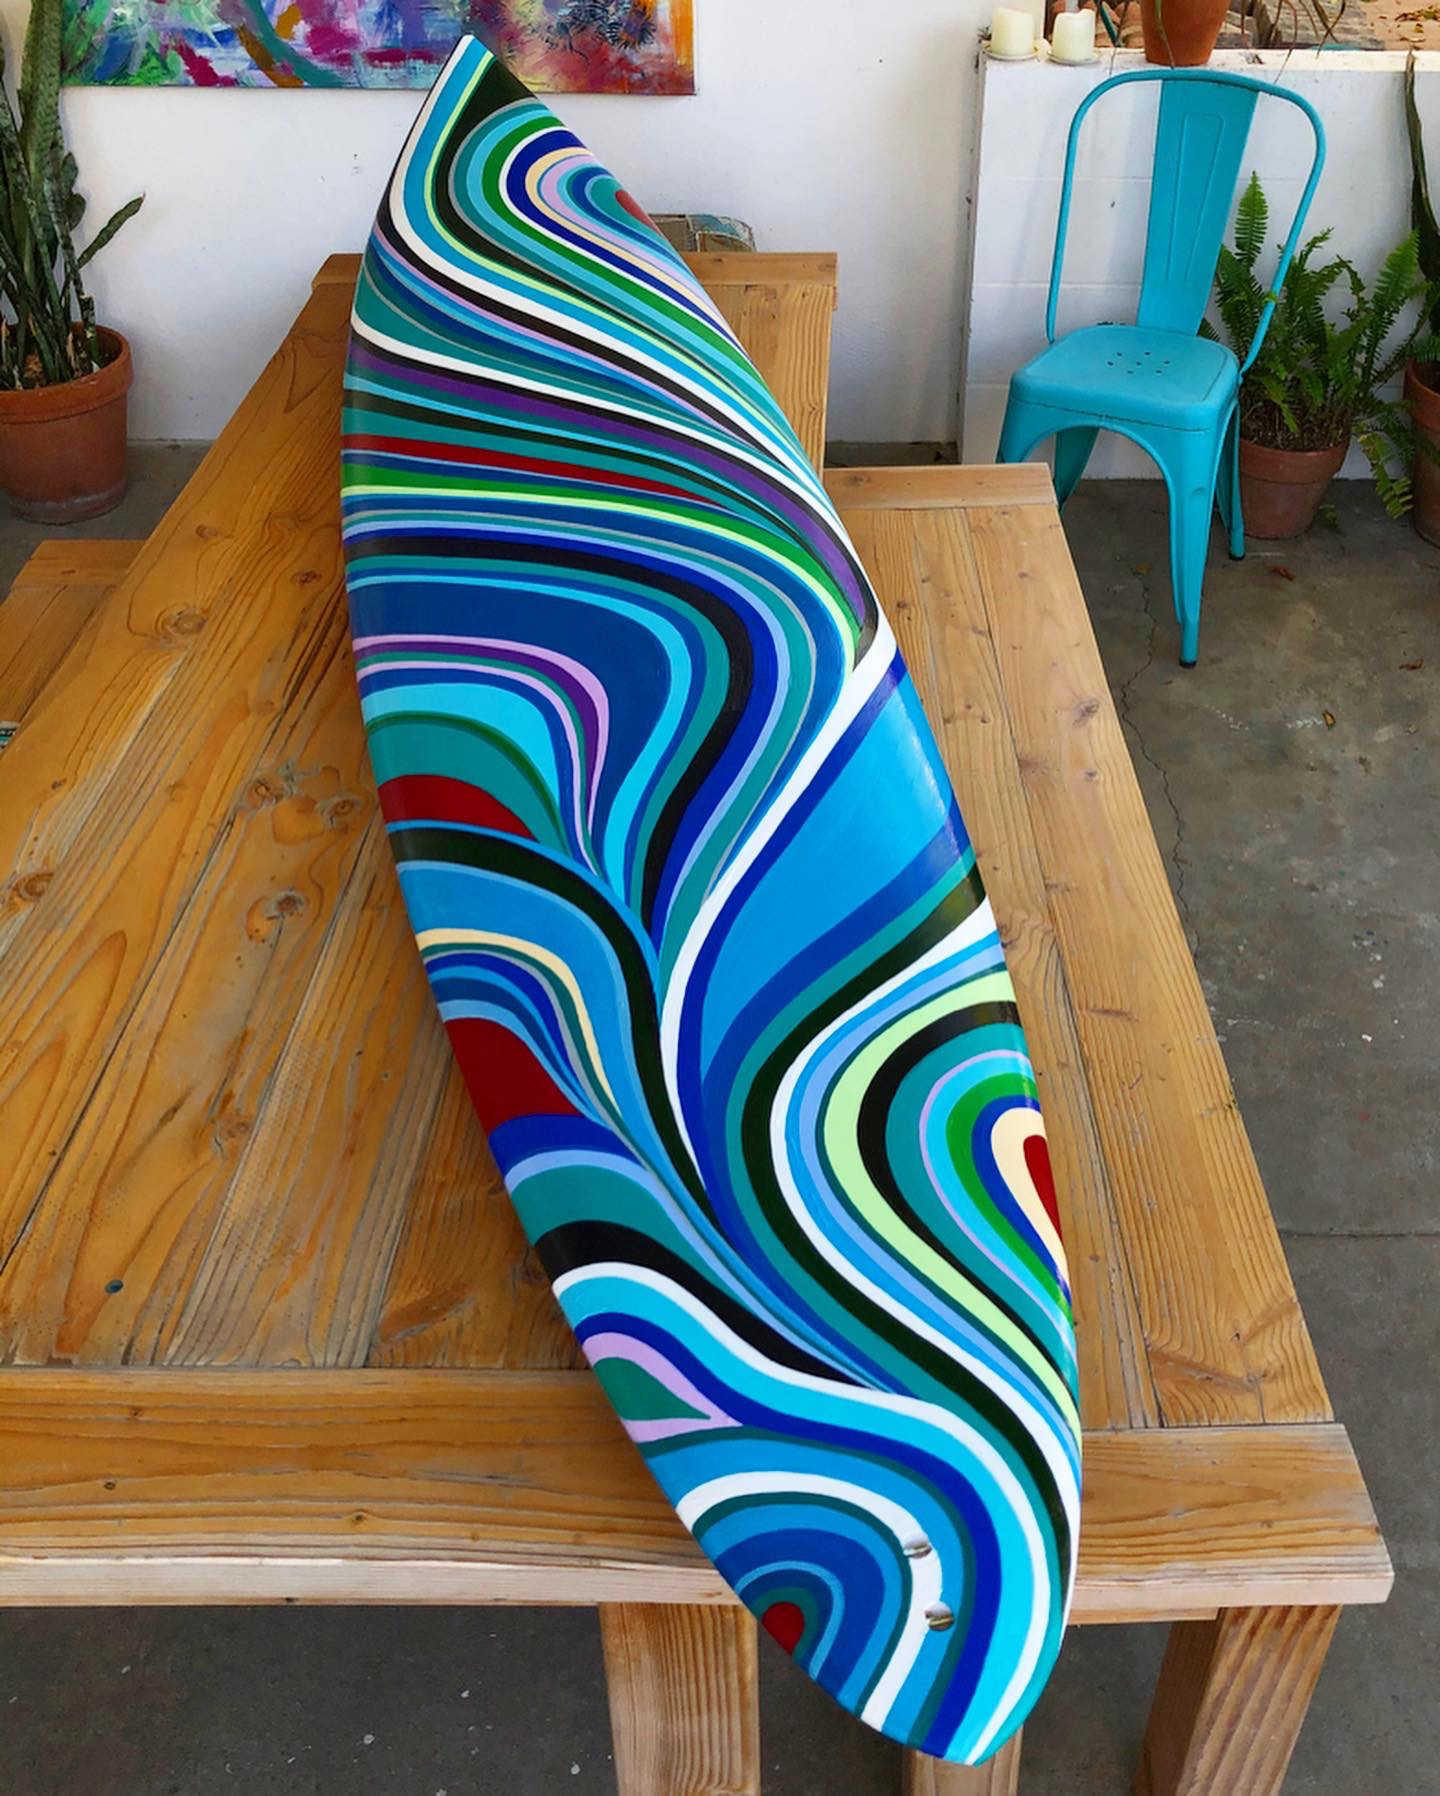 Hand-painted Commissioned Surfboard